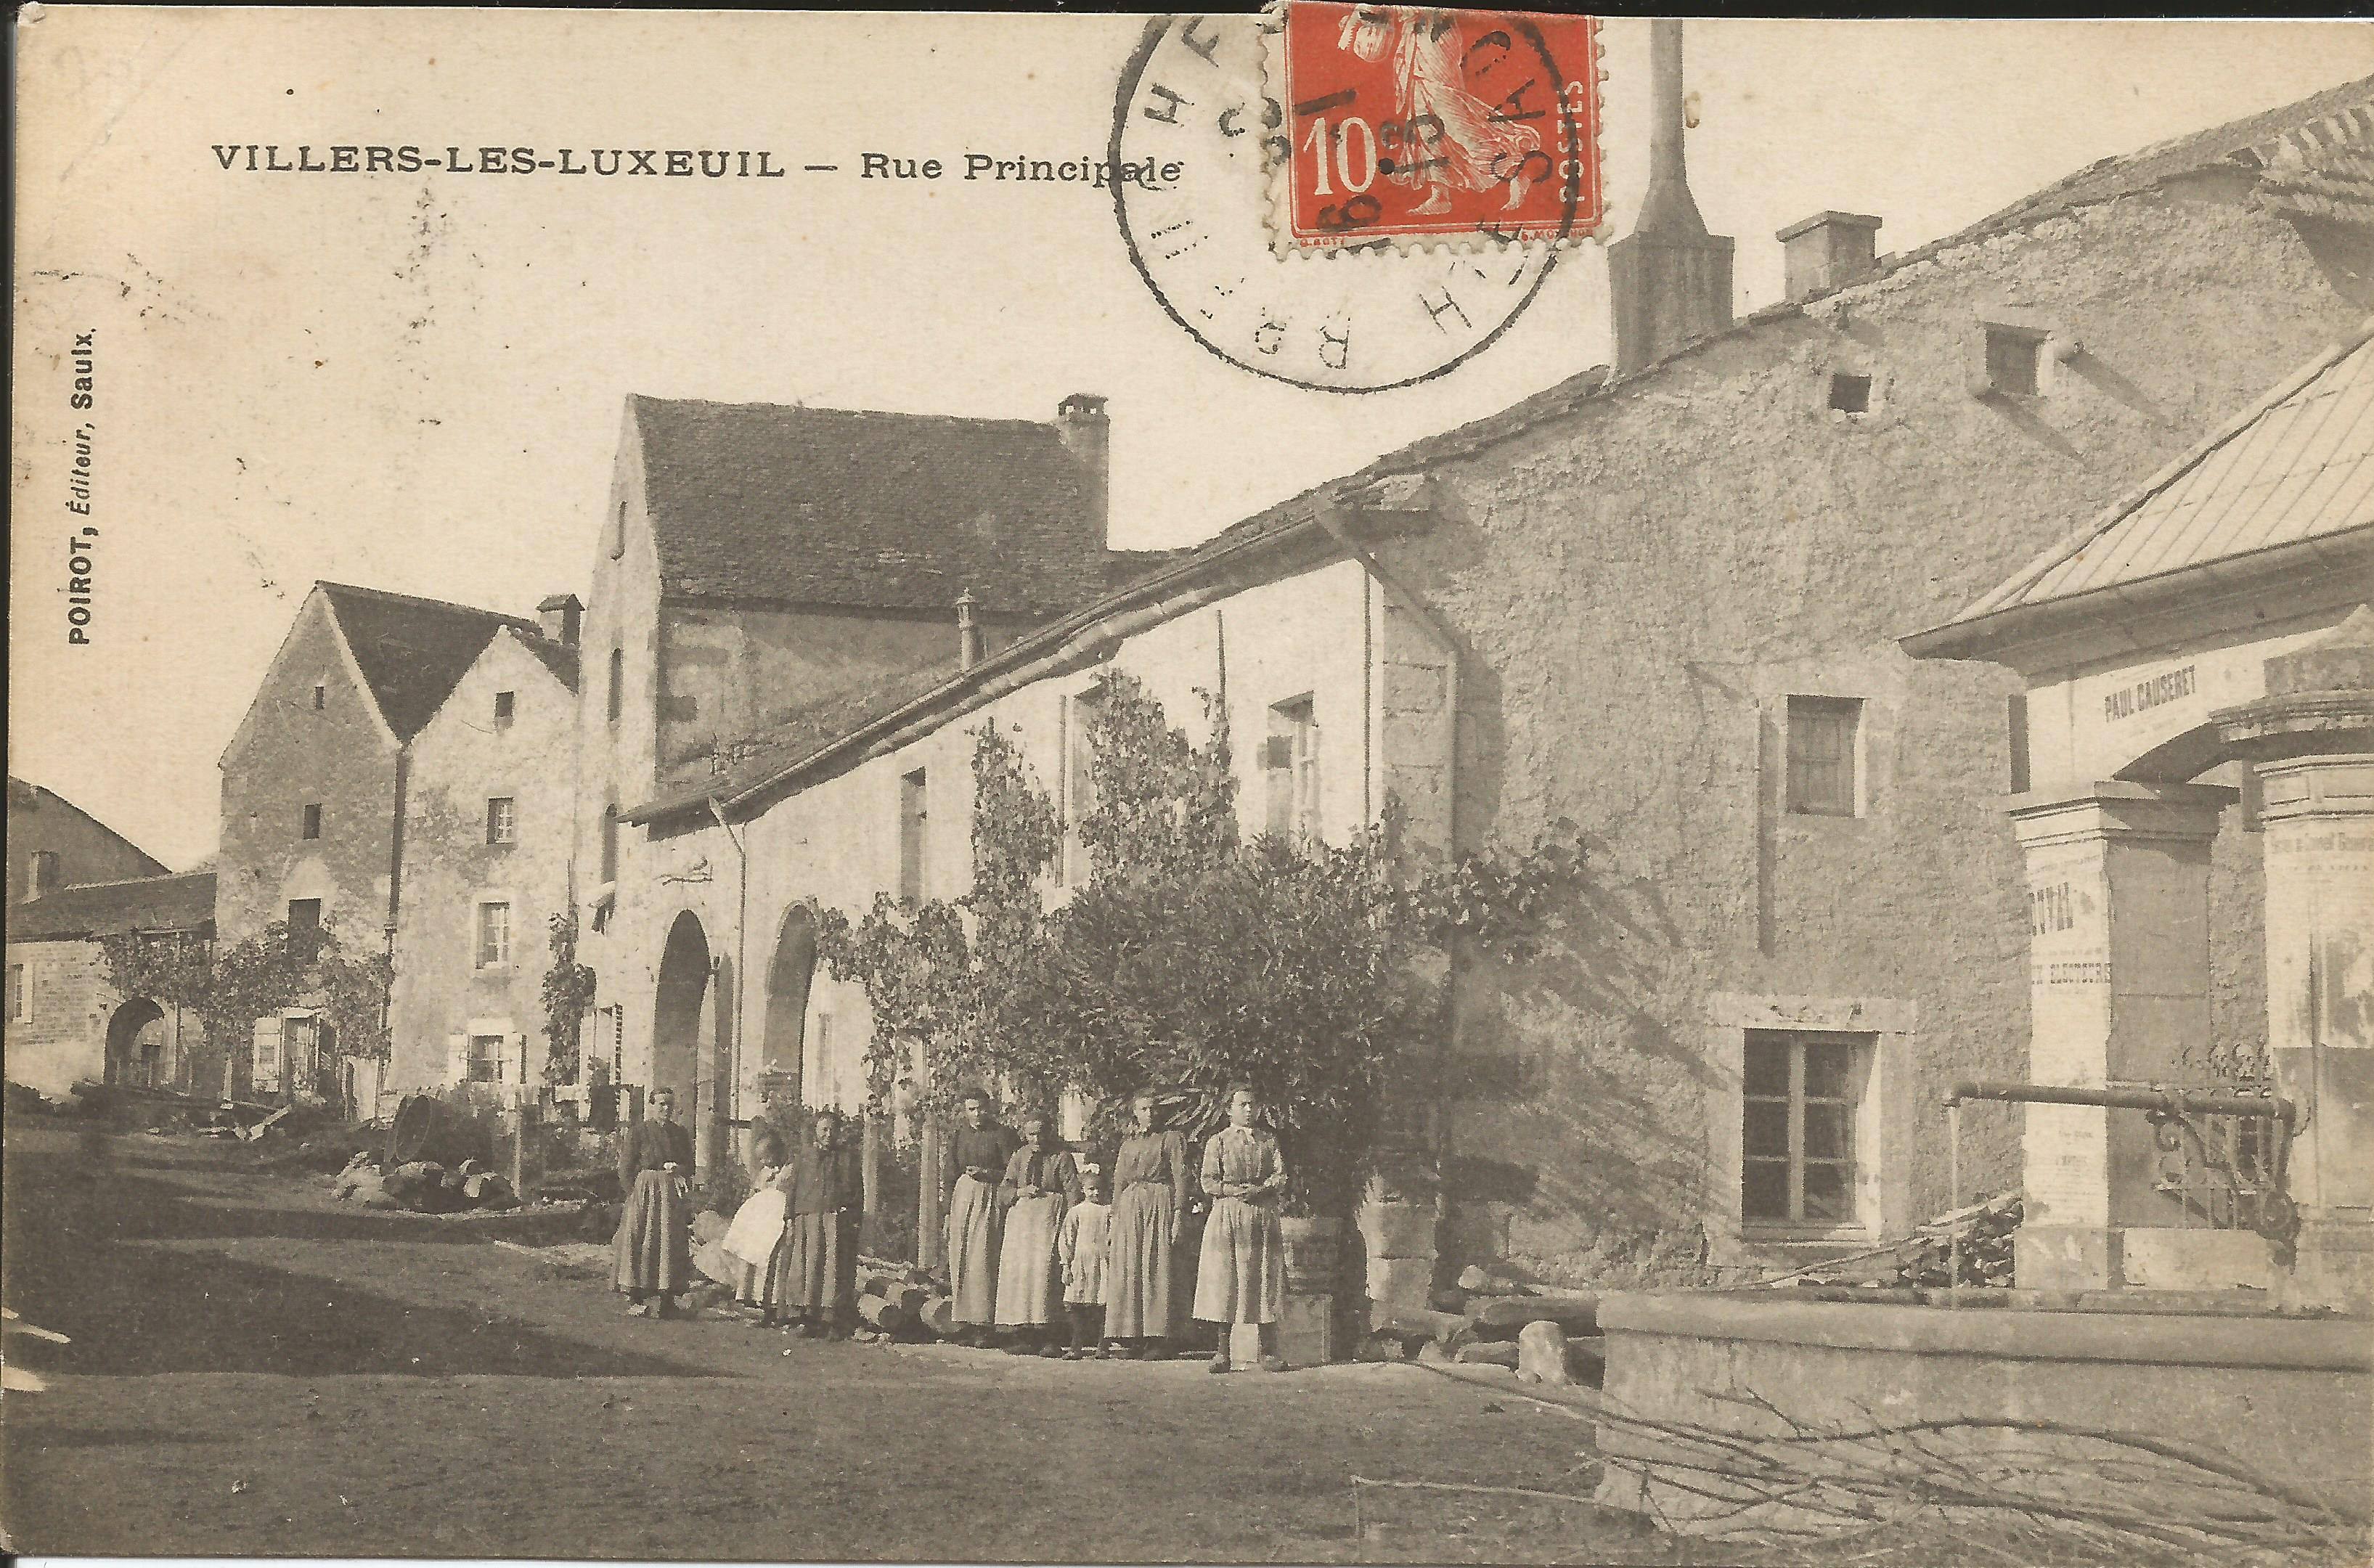 https://www.villers-les-luxeuil.com/projets/villers/files/images/Cartes_postales/Rue_2015/Rue_Principale_2_1913.jpg